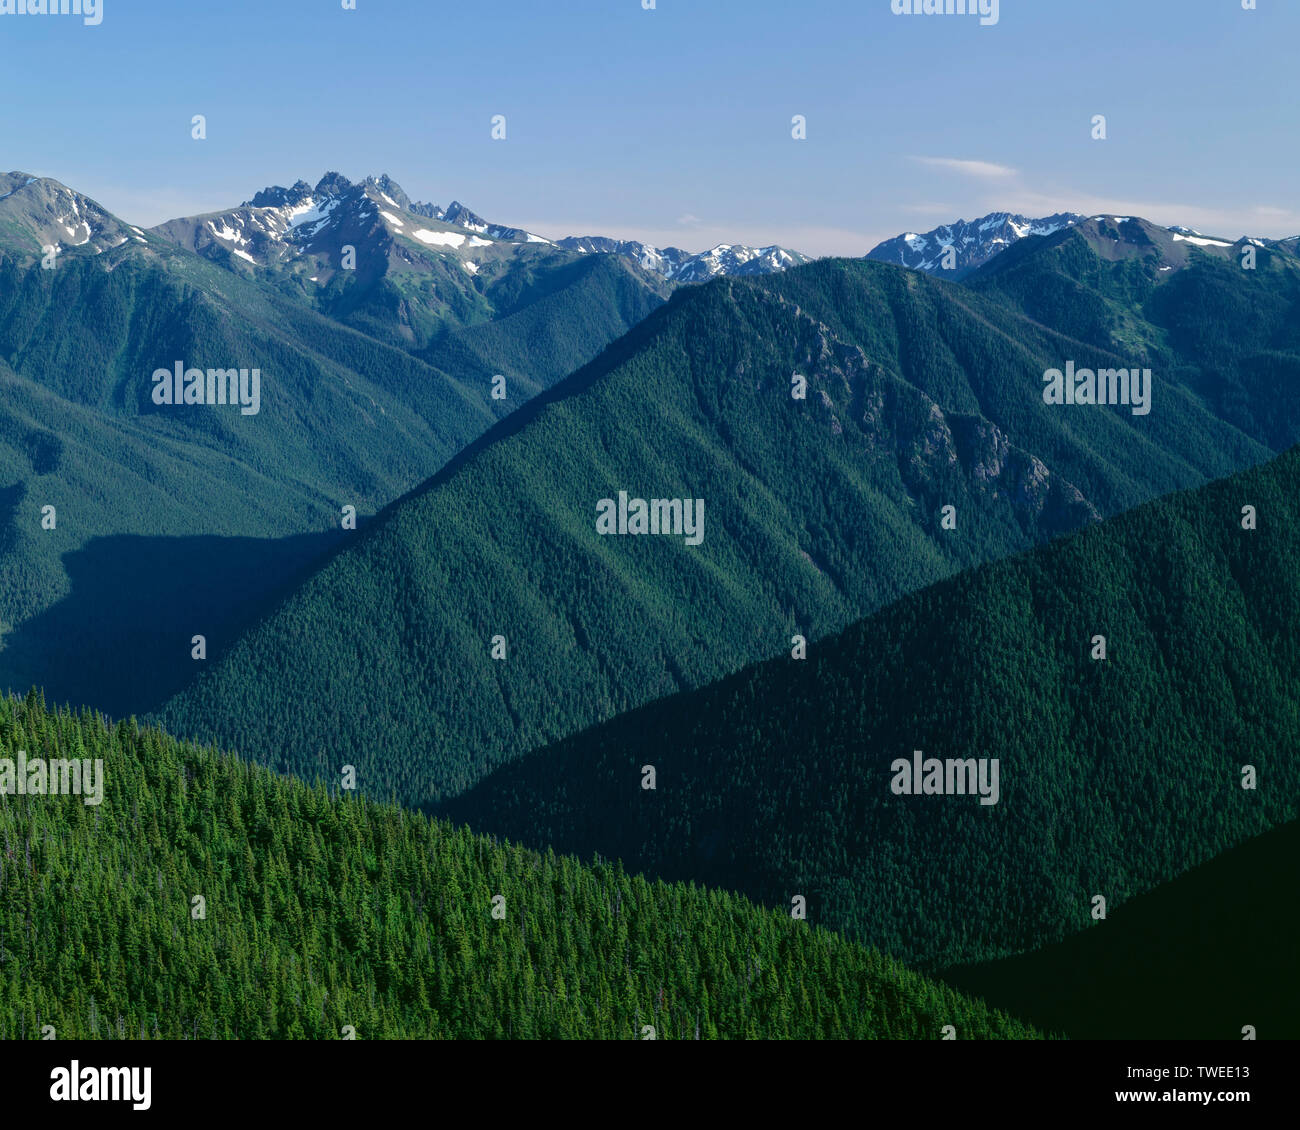 USA, Washington, Olympic National Park, Mt. Deception (top left) rises above densely forested ridges and valleys; view south from Deer Park. Stock Photo